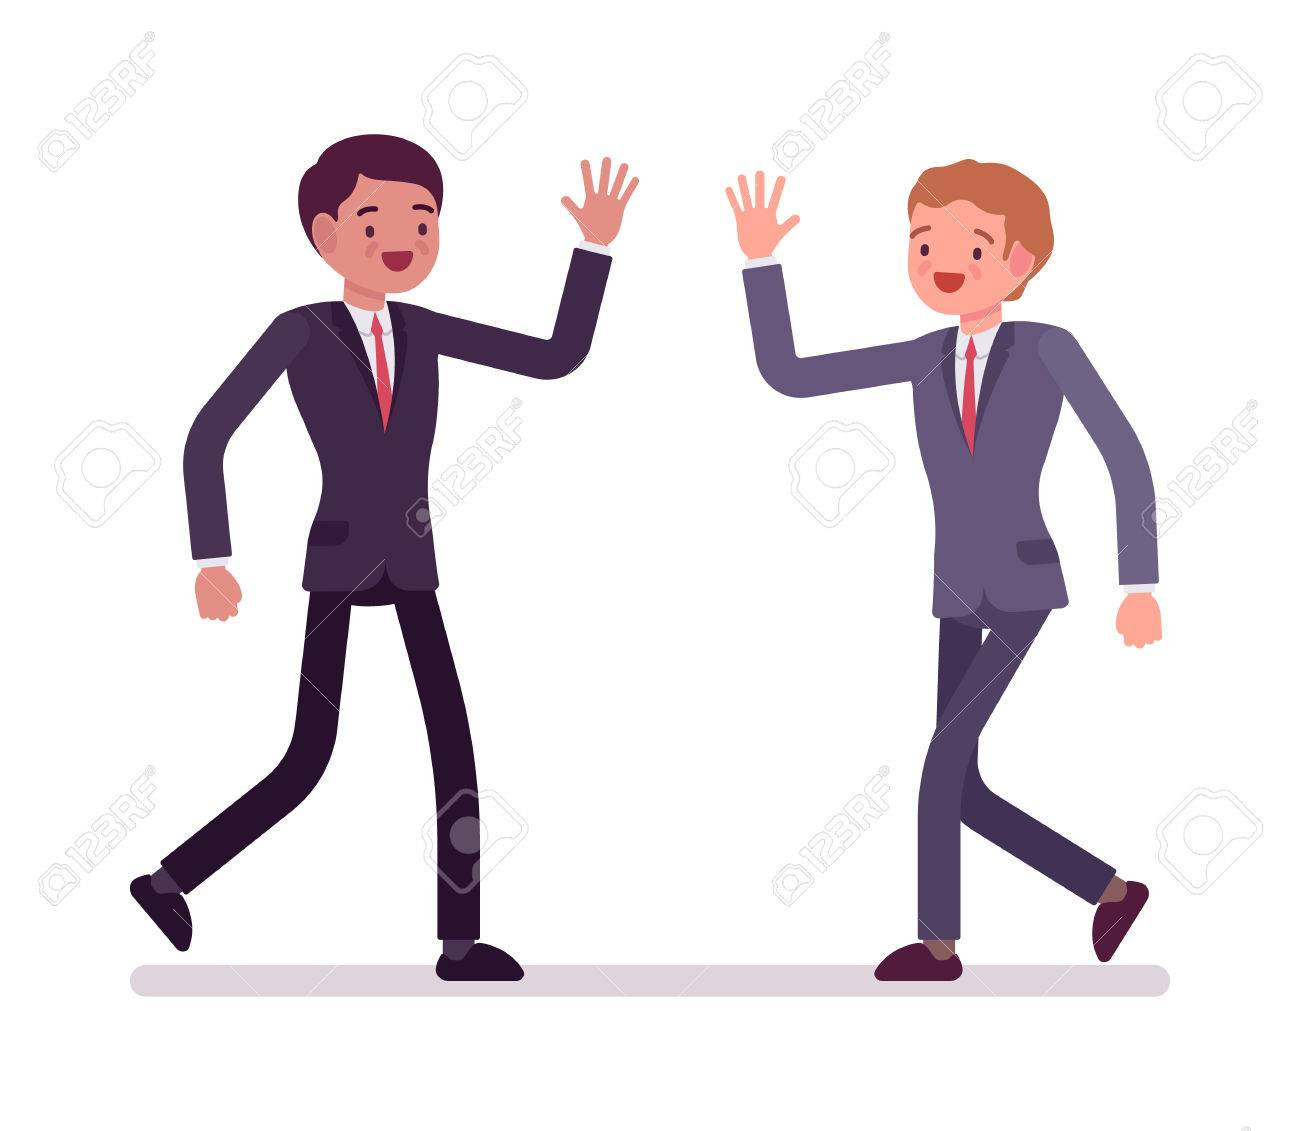 Businessmen happy greeting partners in formal wear friendly businessmen happy greeting partners in formal wear friendly meeting each other coworkers effective m4hsunfo